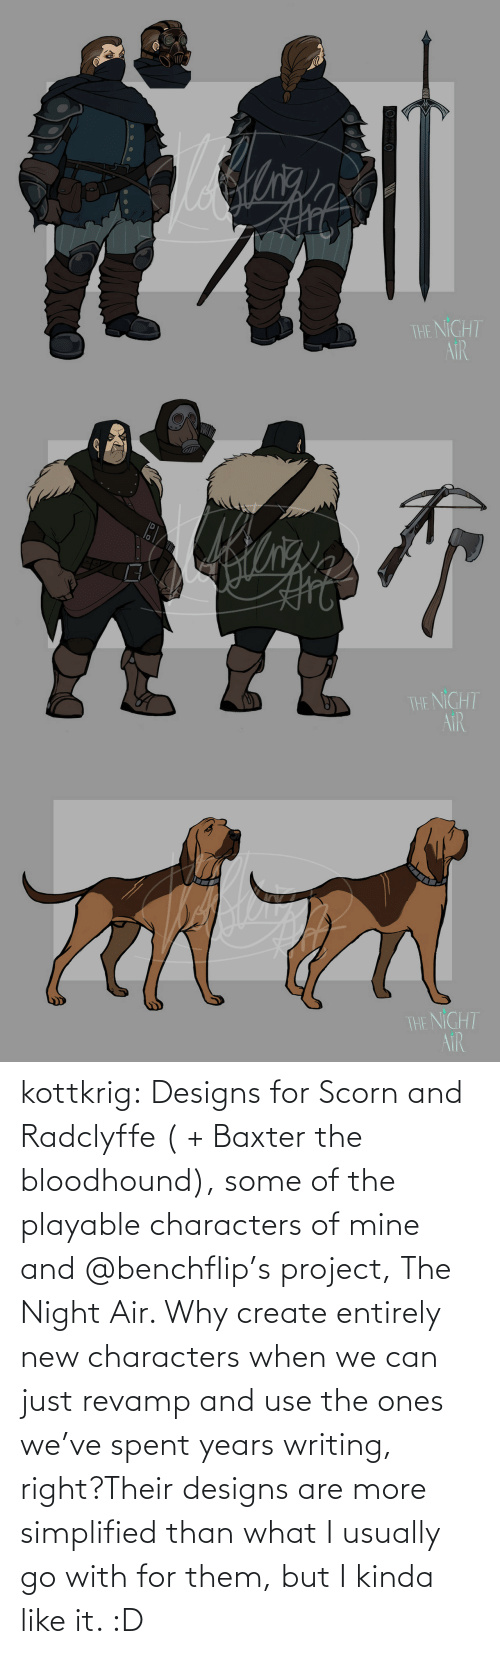 create: kottkrig:  Designs for Scorn and Radclyffe ( + Baxter the bloodhound), some of the playable characters of mine and @benchflip's project, The Night Air. Why create entirely new characters when we can just revamp and use the ones we've spent years writing, right?Their designs are more simplified than what I usually go with for them, but I kinda like it. :D